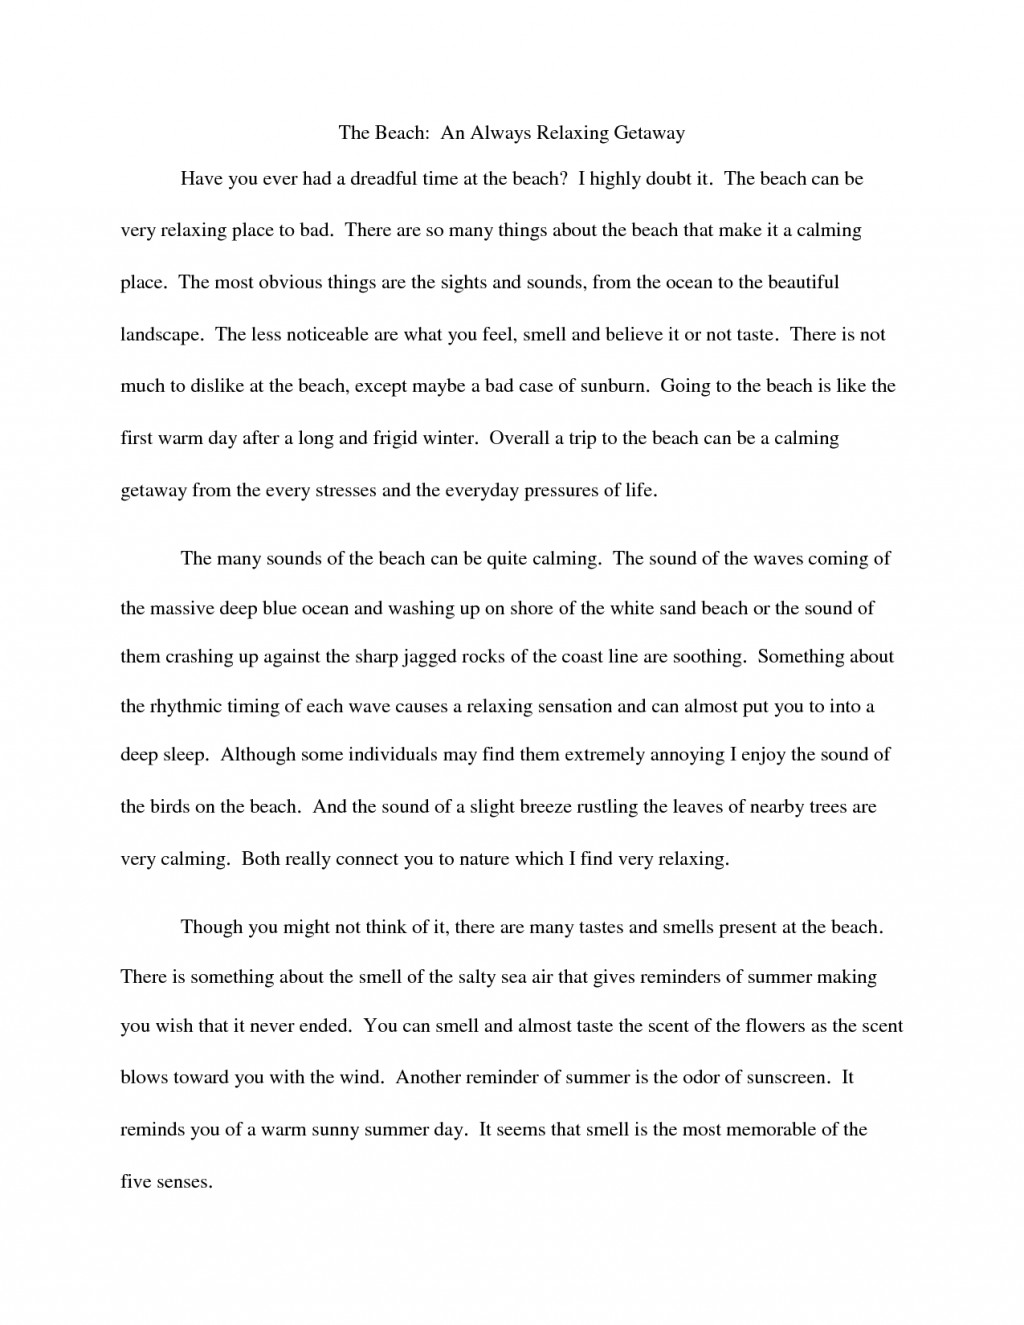 006 Essay Example Descriptive Beach Essays College That Stand Out Odvqltnc Short On The Sunset Paper Barefoot About Walk Vacation Narrative At Night Free Unbelievable Examples Good A Person For High School Large